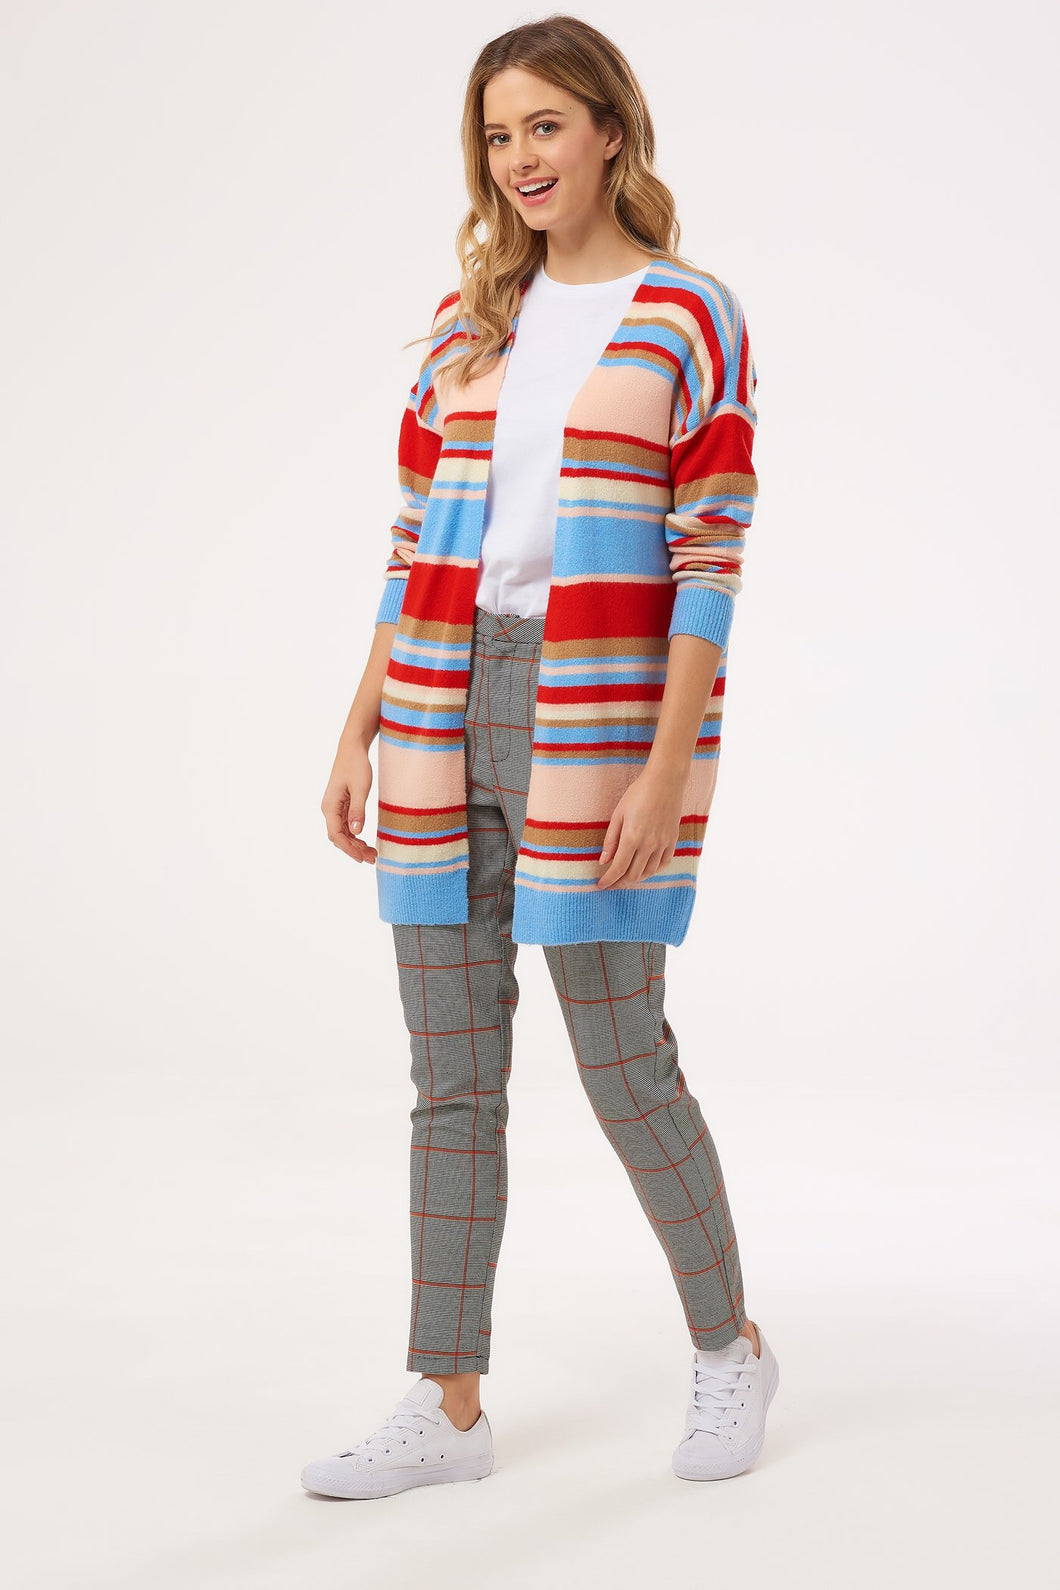 Sugarhill Brighton Paulie Oversized Cardigan - Sands Boutique clothing and gifts